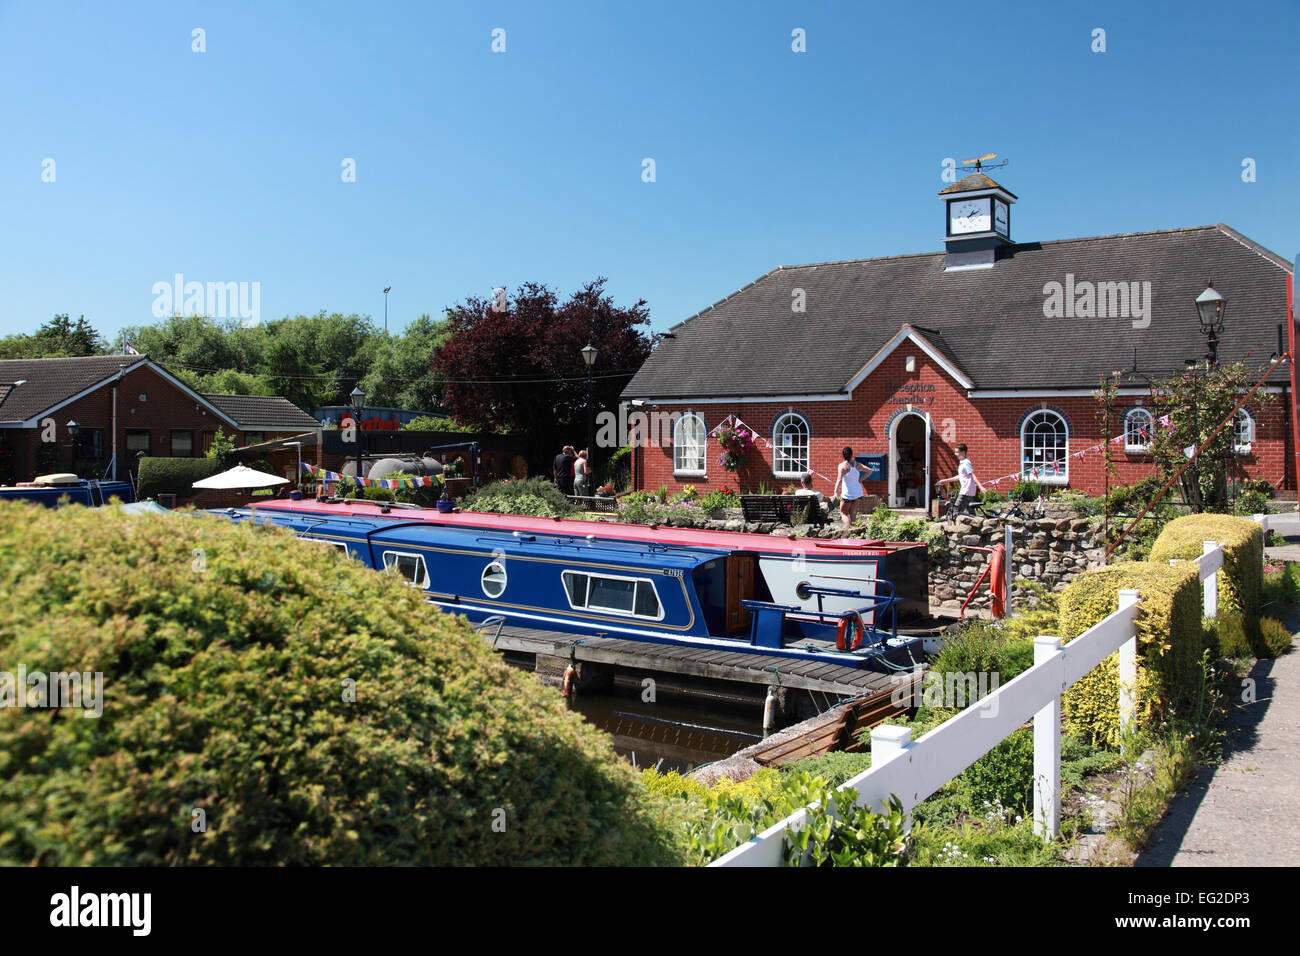 Moored narrowboats on the Trent and Mersey Canal at Shobnall Marina, Burton on Trent, Derbyshire - Stock Image